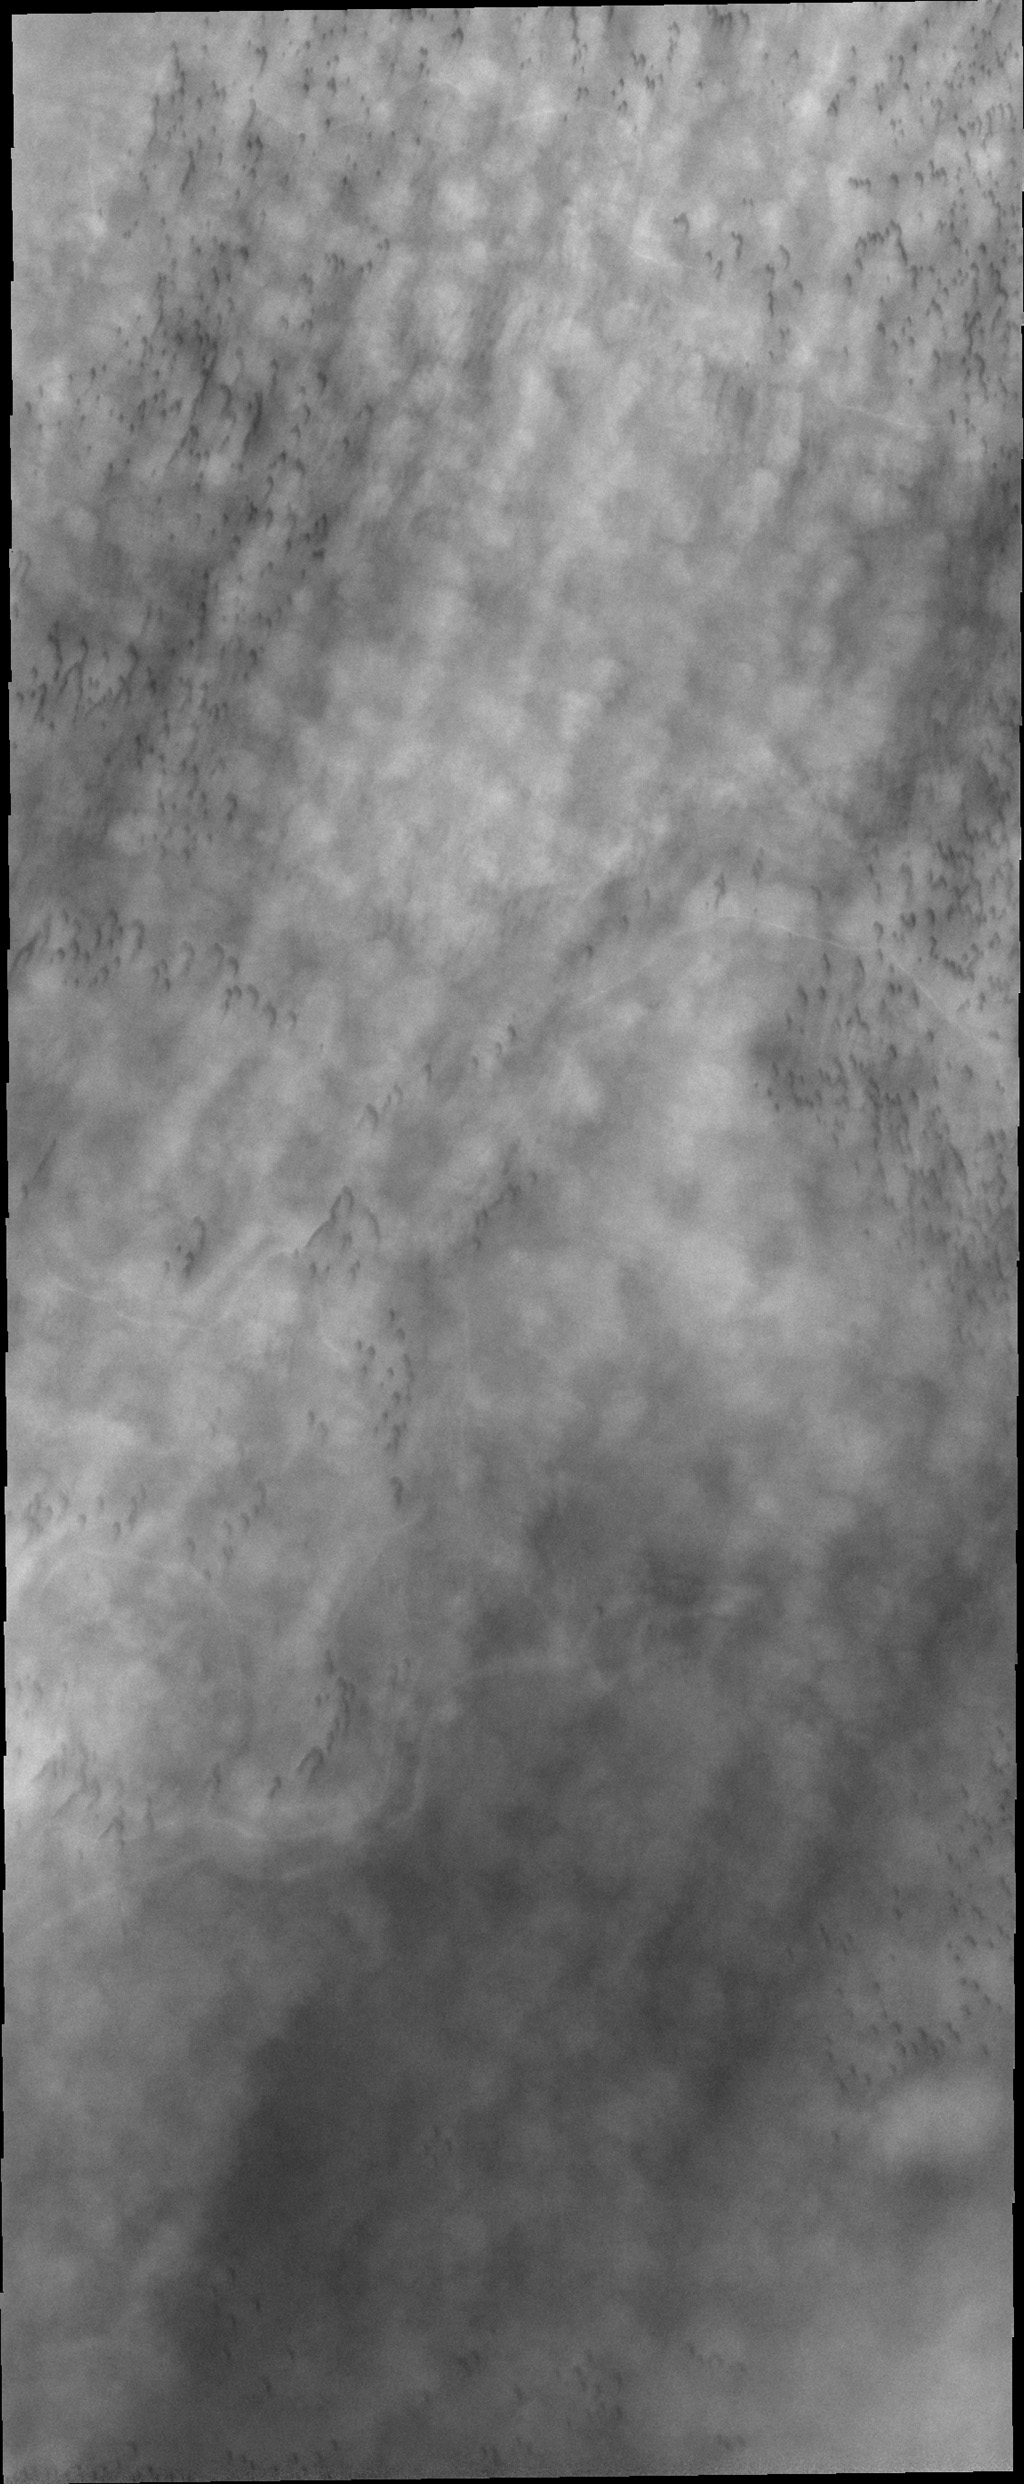 Clouds are common feature over the north polar dunes in spring. This image captured by NASA's 2001 Mars Odyssey spacecraft shows line after line of puffy clouds, with hints of dark sand dunes below.